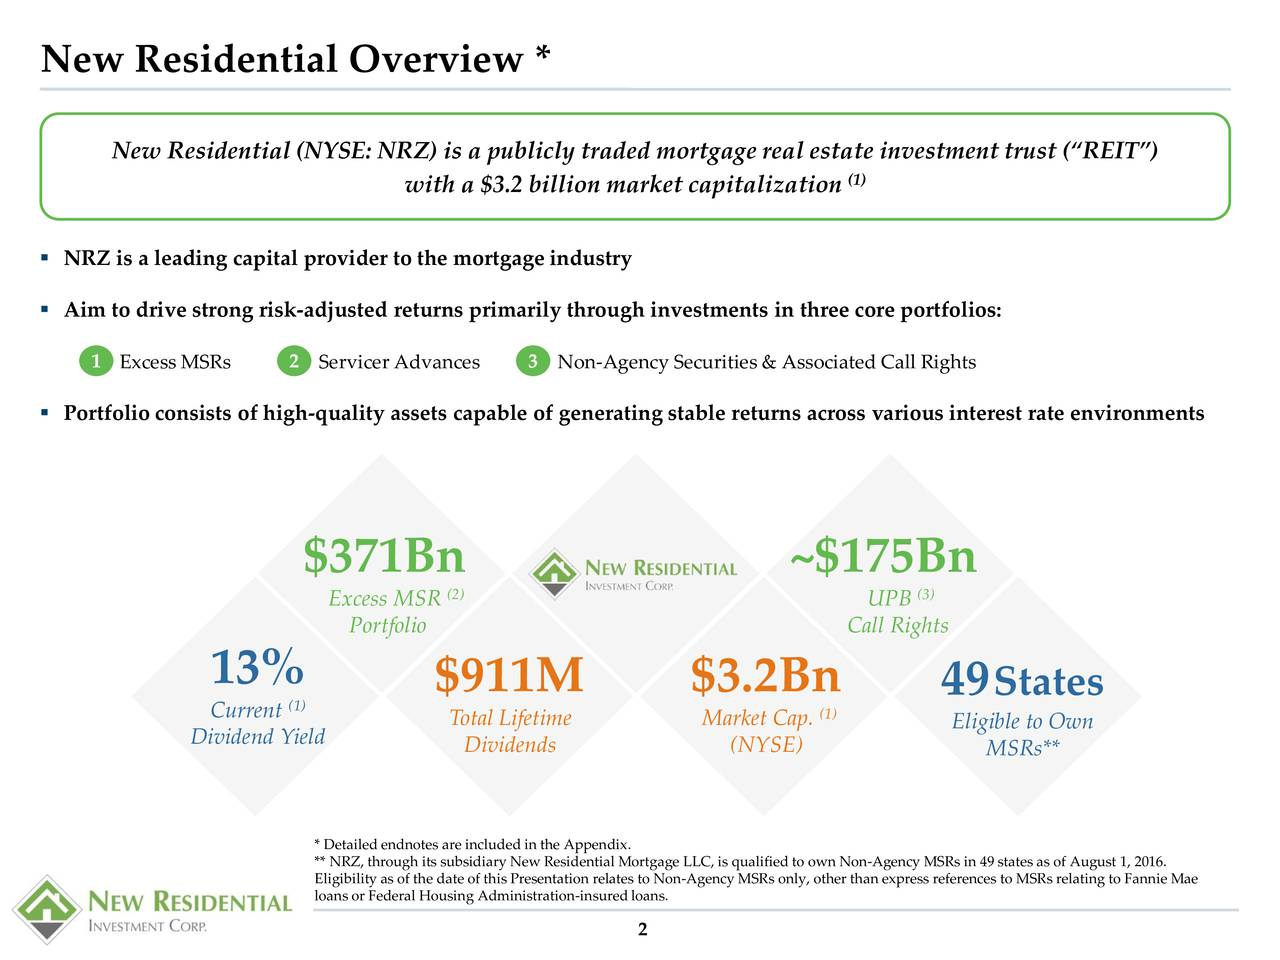 New Residential (NYSE: NRZ) is a publicly traded mortgage real estate investment trust (REIT) (1) with a $3.2 billion market capitalization NRZ is a leading capital provider to the mortgage industry Aim to drive strong risk-adjusted returns primarily through investments in three core portfolios: Excess MSRs 2 Servicer Advances 3 Non-Agency Securities & Associated Call Rights Portfolio consists of high-quality assets capable of generating stable returns across various interest rate environments $371Bn ~$175Bn (2) (3) Excess MSR UPB Portfolio Call Rights 13% $911M $3.2Bn 49 States Current1) Total Lifetime Market Cap.1) Dividend Yield Eligible to Own Dividends (NYSE) MSRs** * Detailed endnotes are included in the Appendix. ** NRZ, through its subsidiary New Residential Mortgage LLC, is qualified to own Non-Agency MSRs in 49 states as of August 1, 2016. Eligibility as of the date of this Presentation relates to Non-Agency MSRs only, other than express references to MSRs relating to Fannie Mae loans or Federal Housing Administration-insured loans. 2